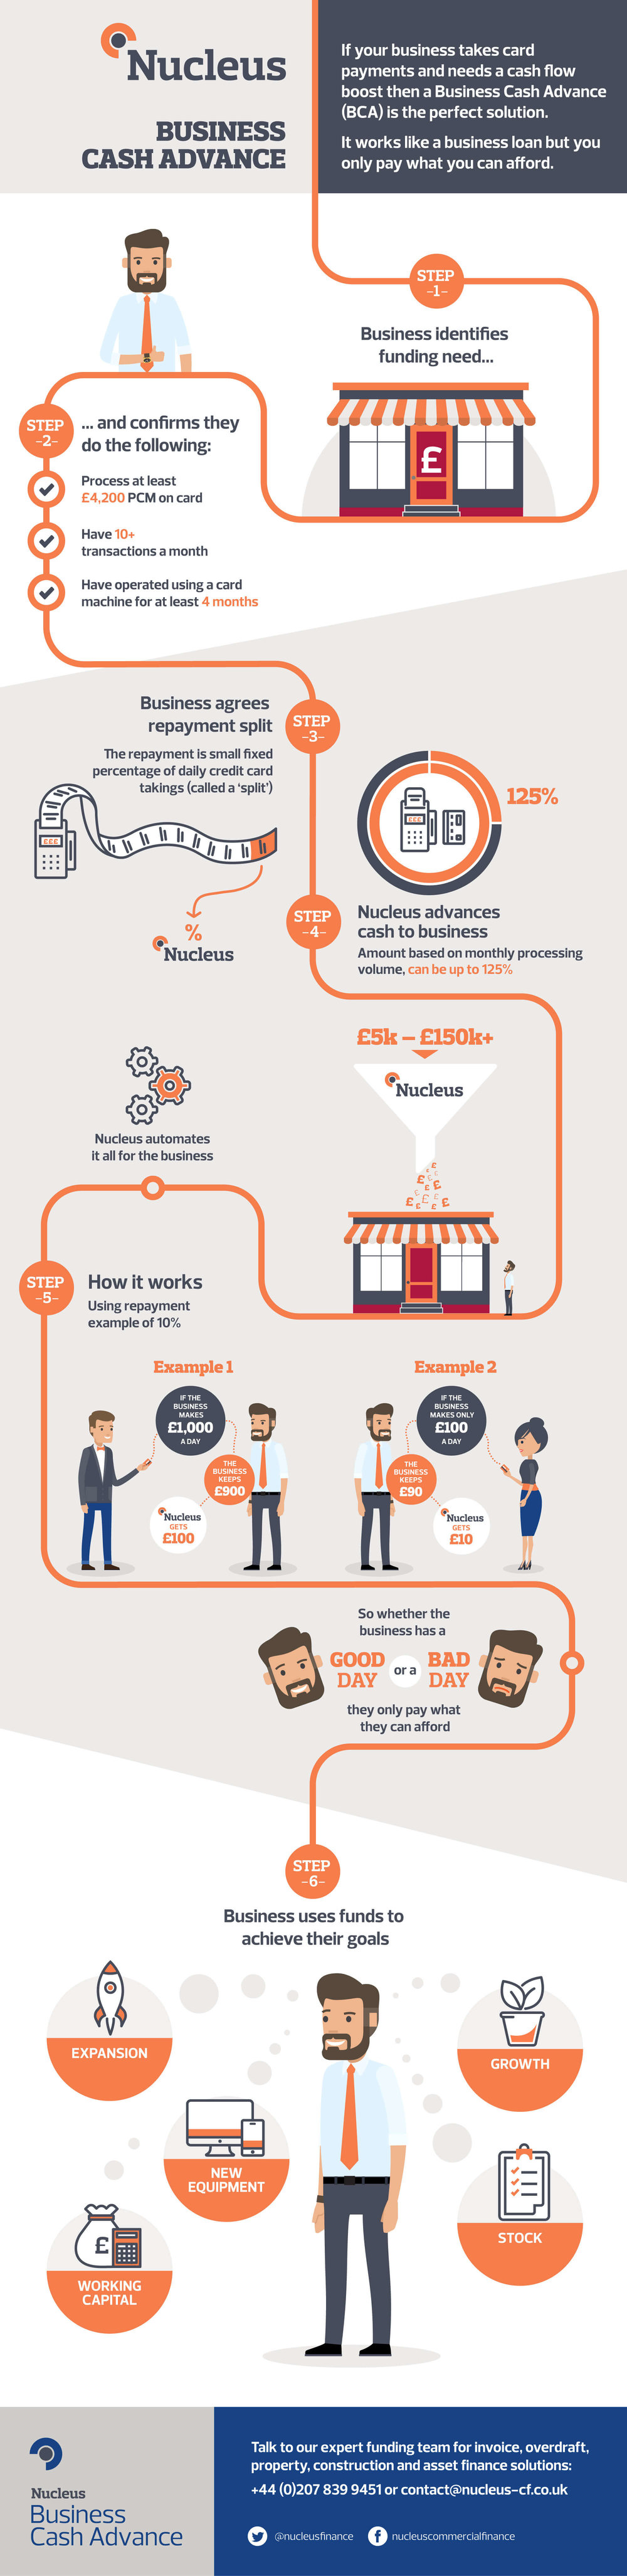 Business-Cash-Advance-infographic_v8.jpg